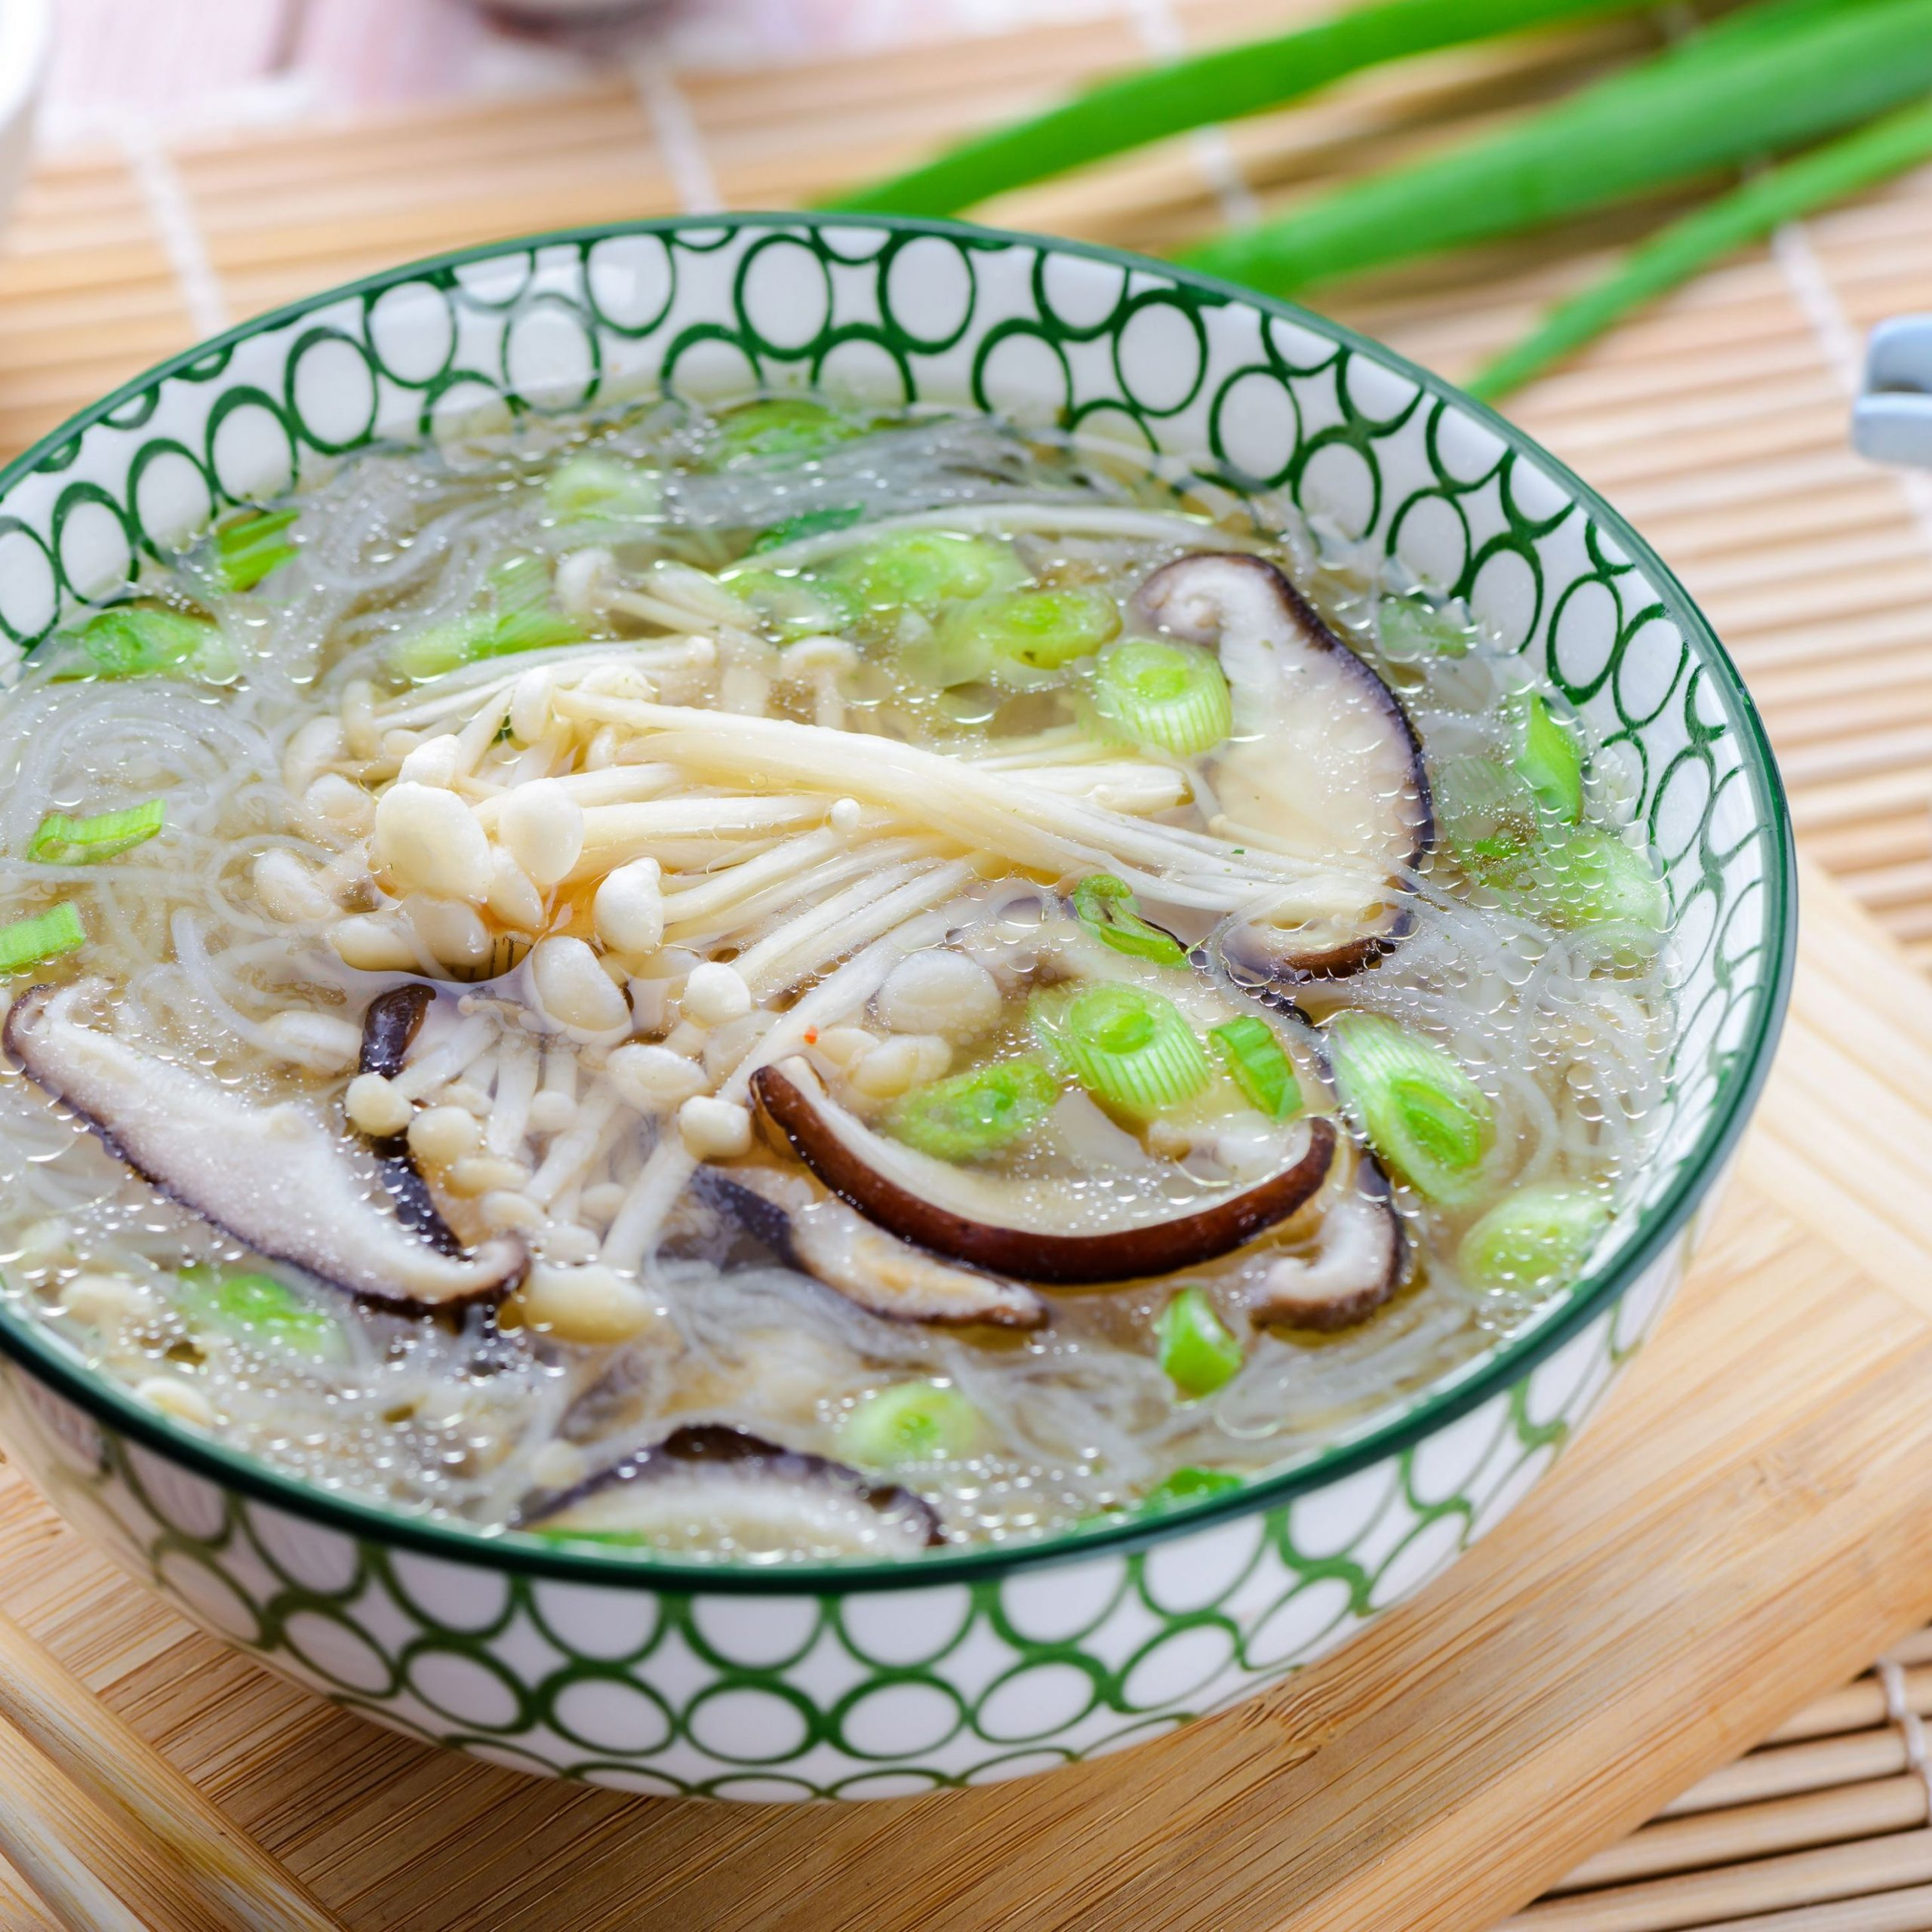 Japanese Enoki and Shiitake Mushroom Soup Recipe